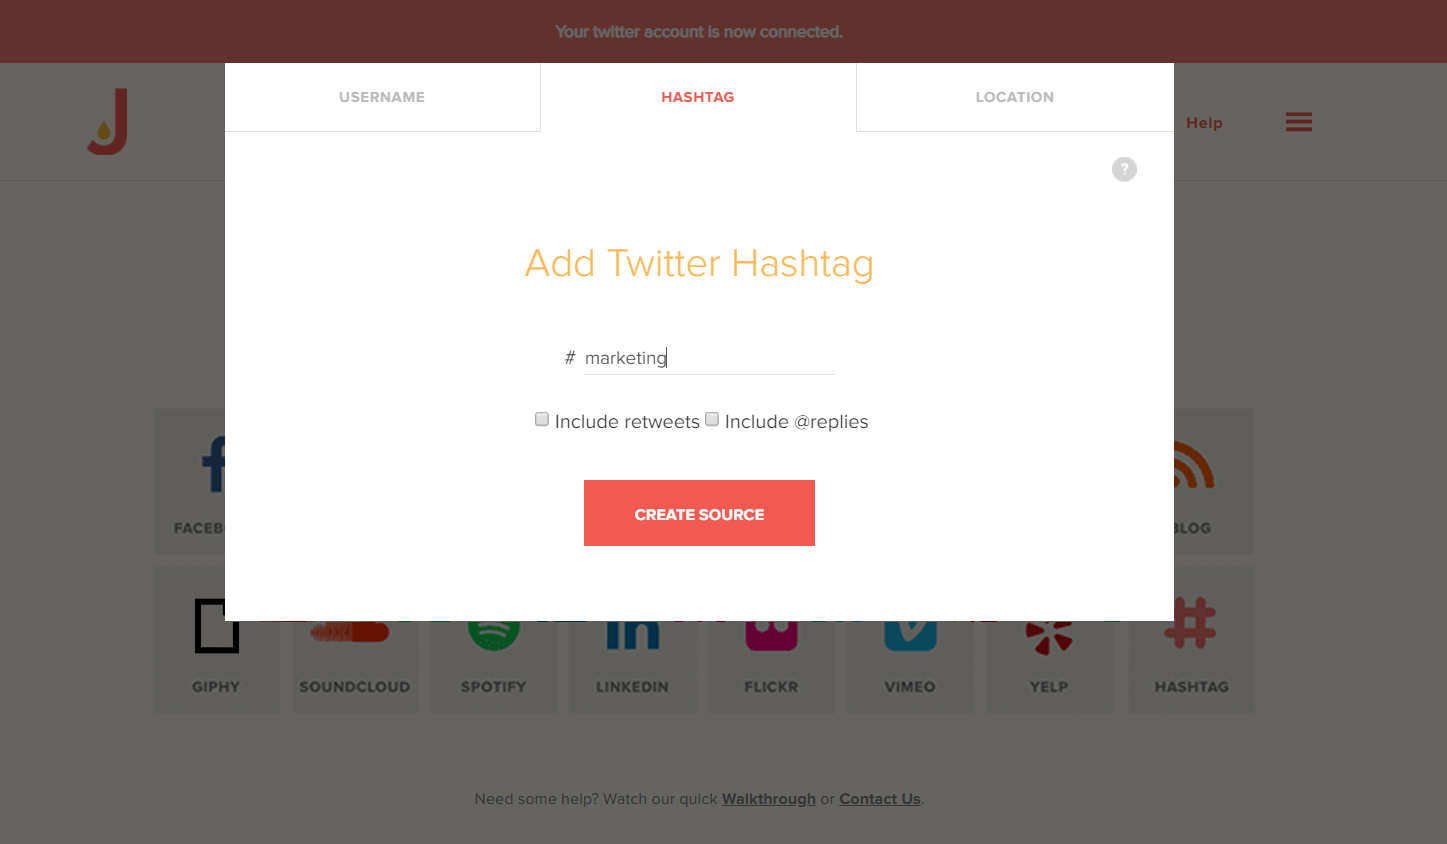 Add #marketing hashtag to Twitter feed